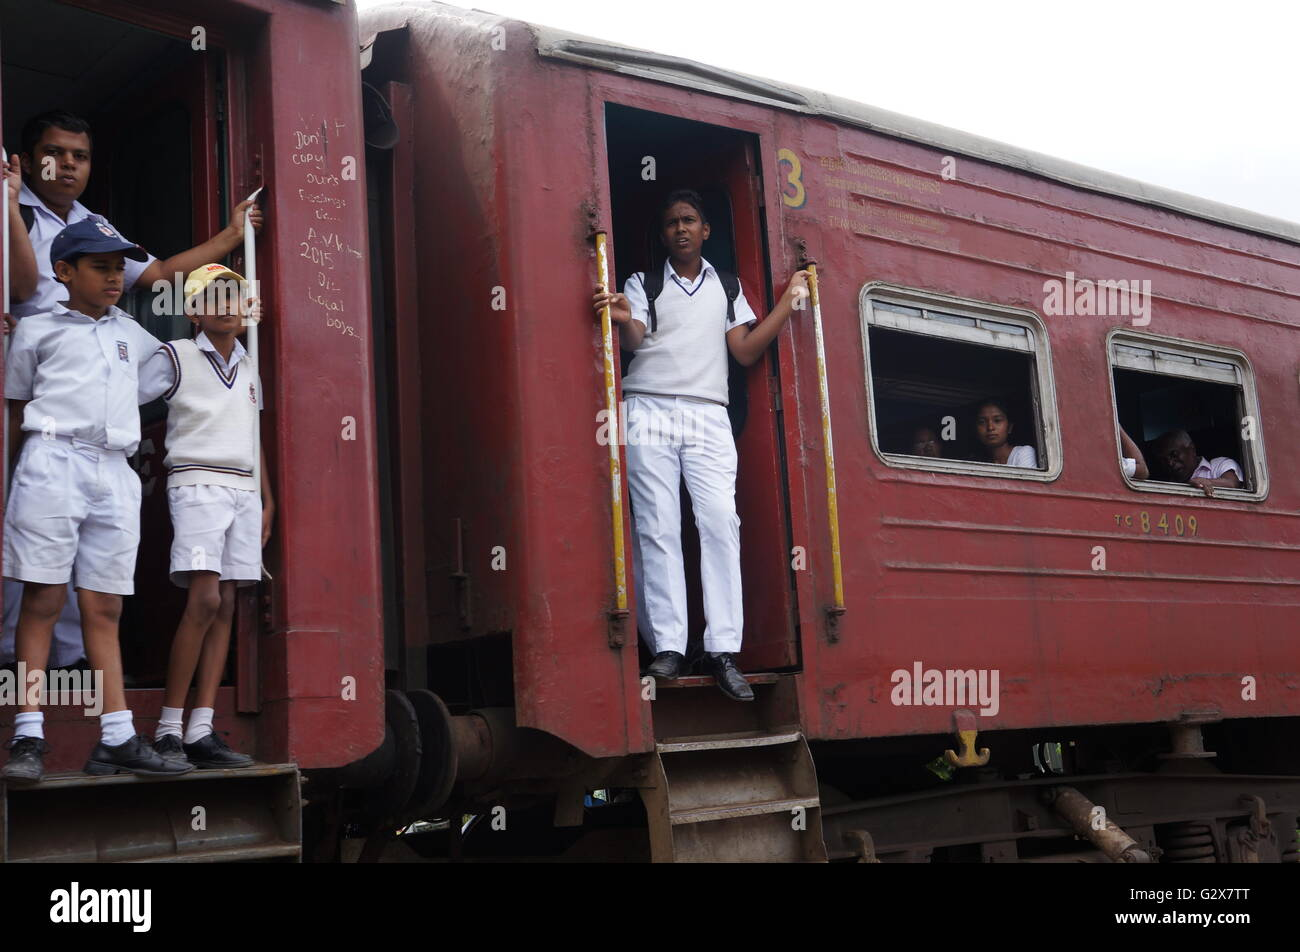 Young students in uniform on their way back from school standing on the platforms of an old train, Kandy, Sri Lanka. Stock Photo